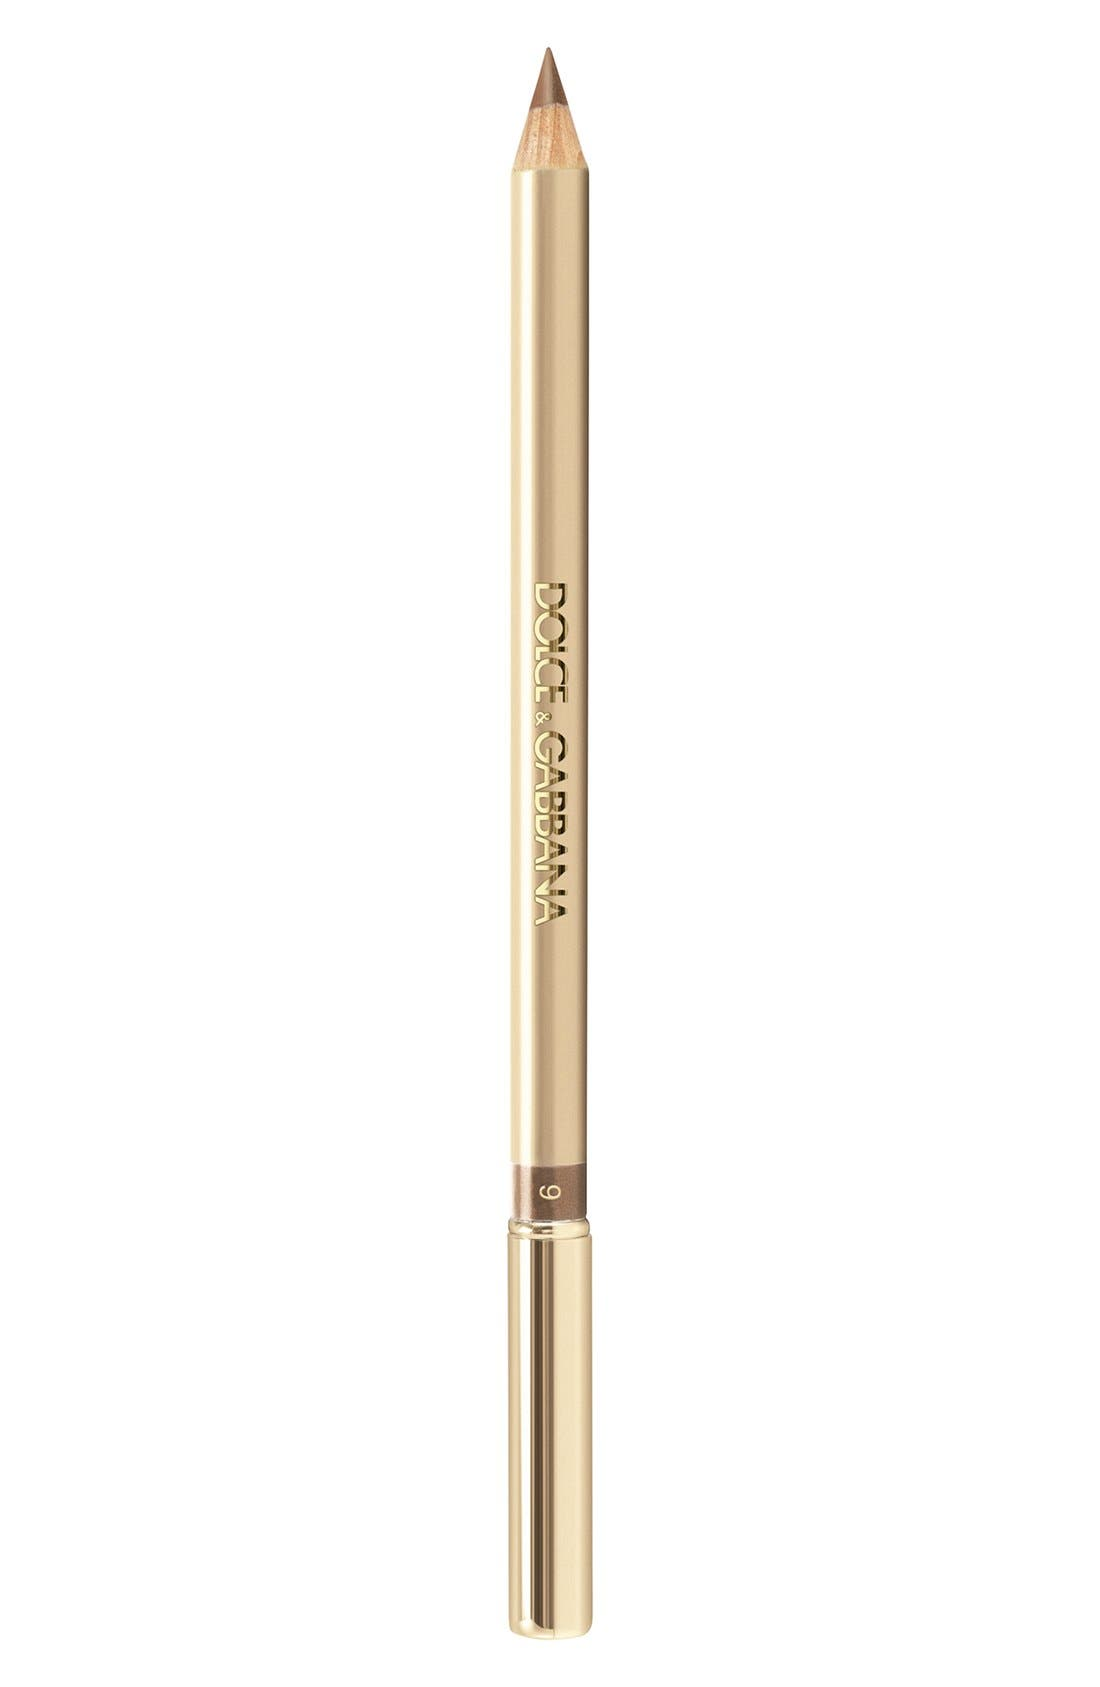 Dolce&Gabbana Beauty Precision Lip Liner